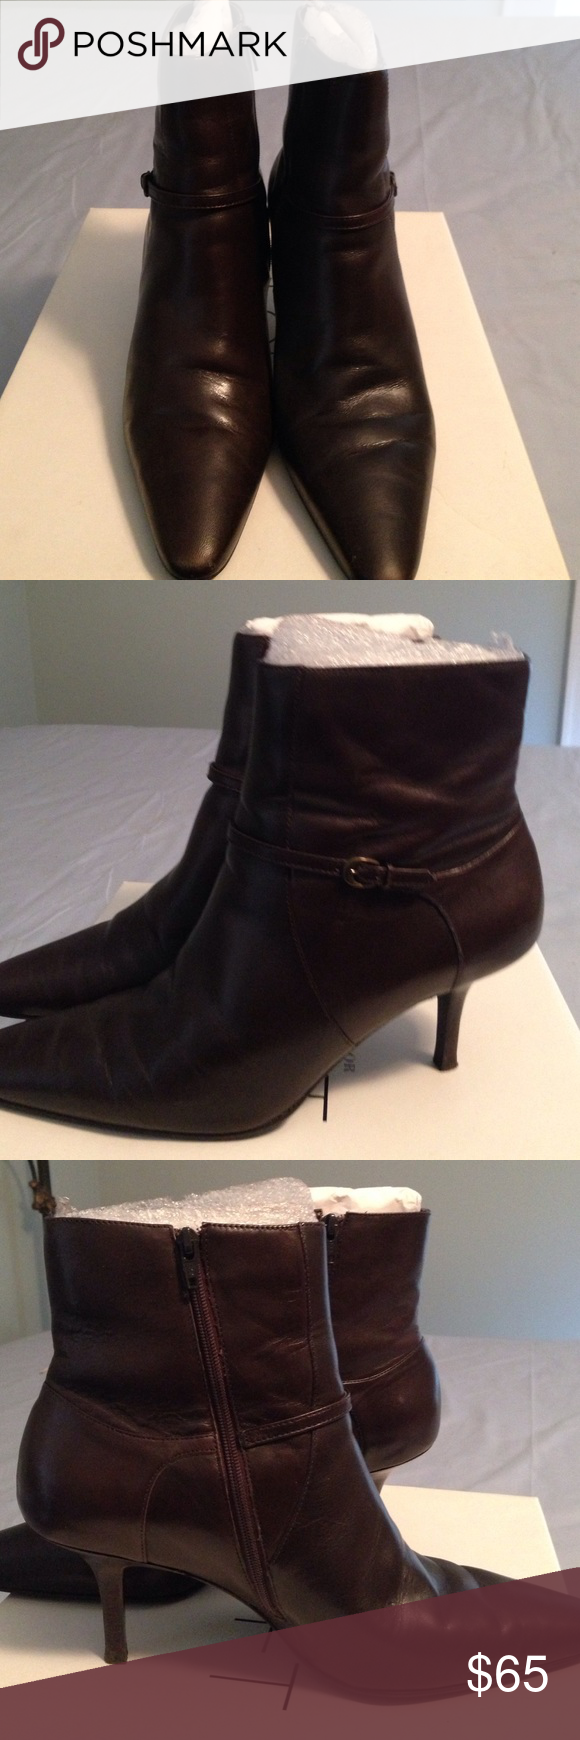 LOFT Dark brown leather booties Dark brown ankle boots, 3in heel, 7 in shaft LOFT Shoes Ankle Boots & Booties